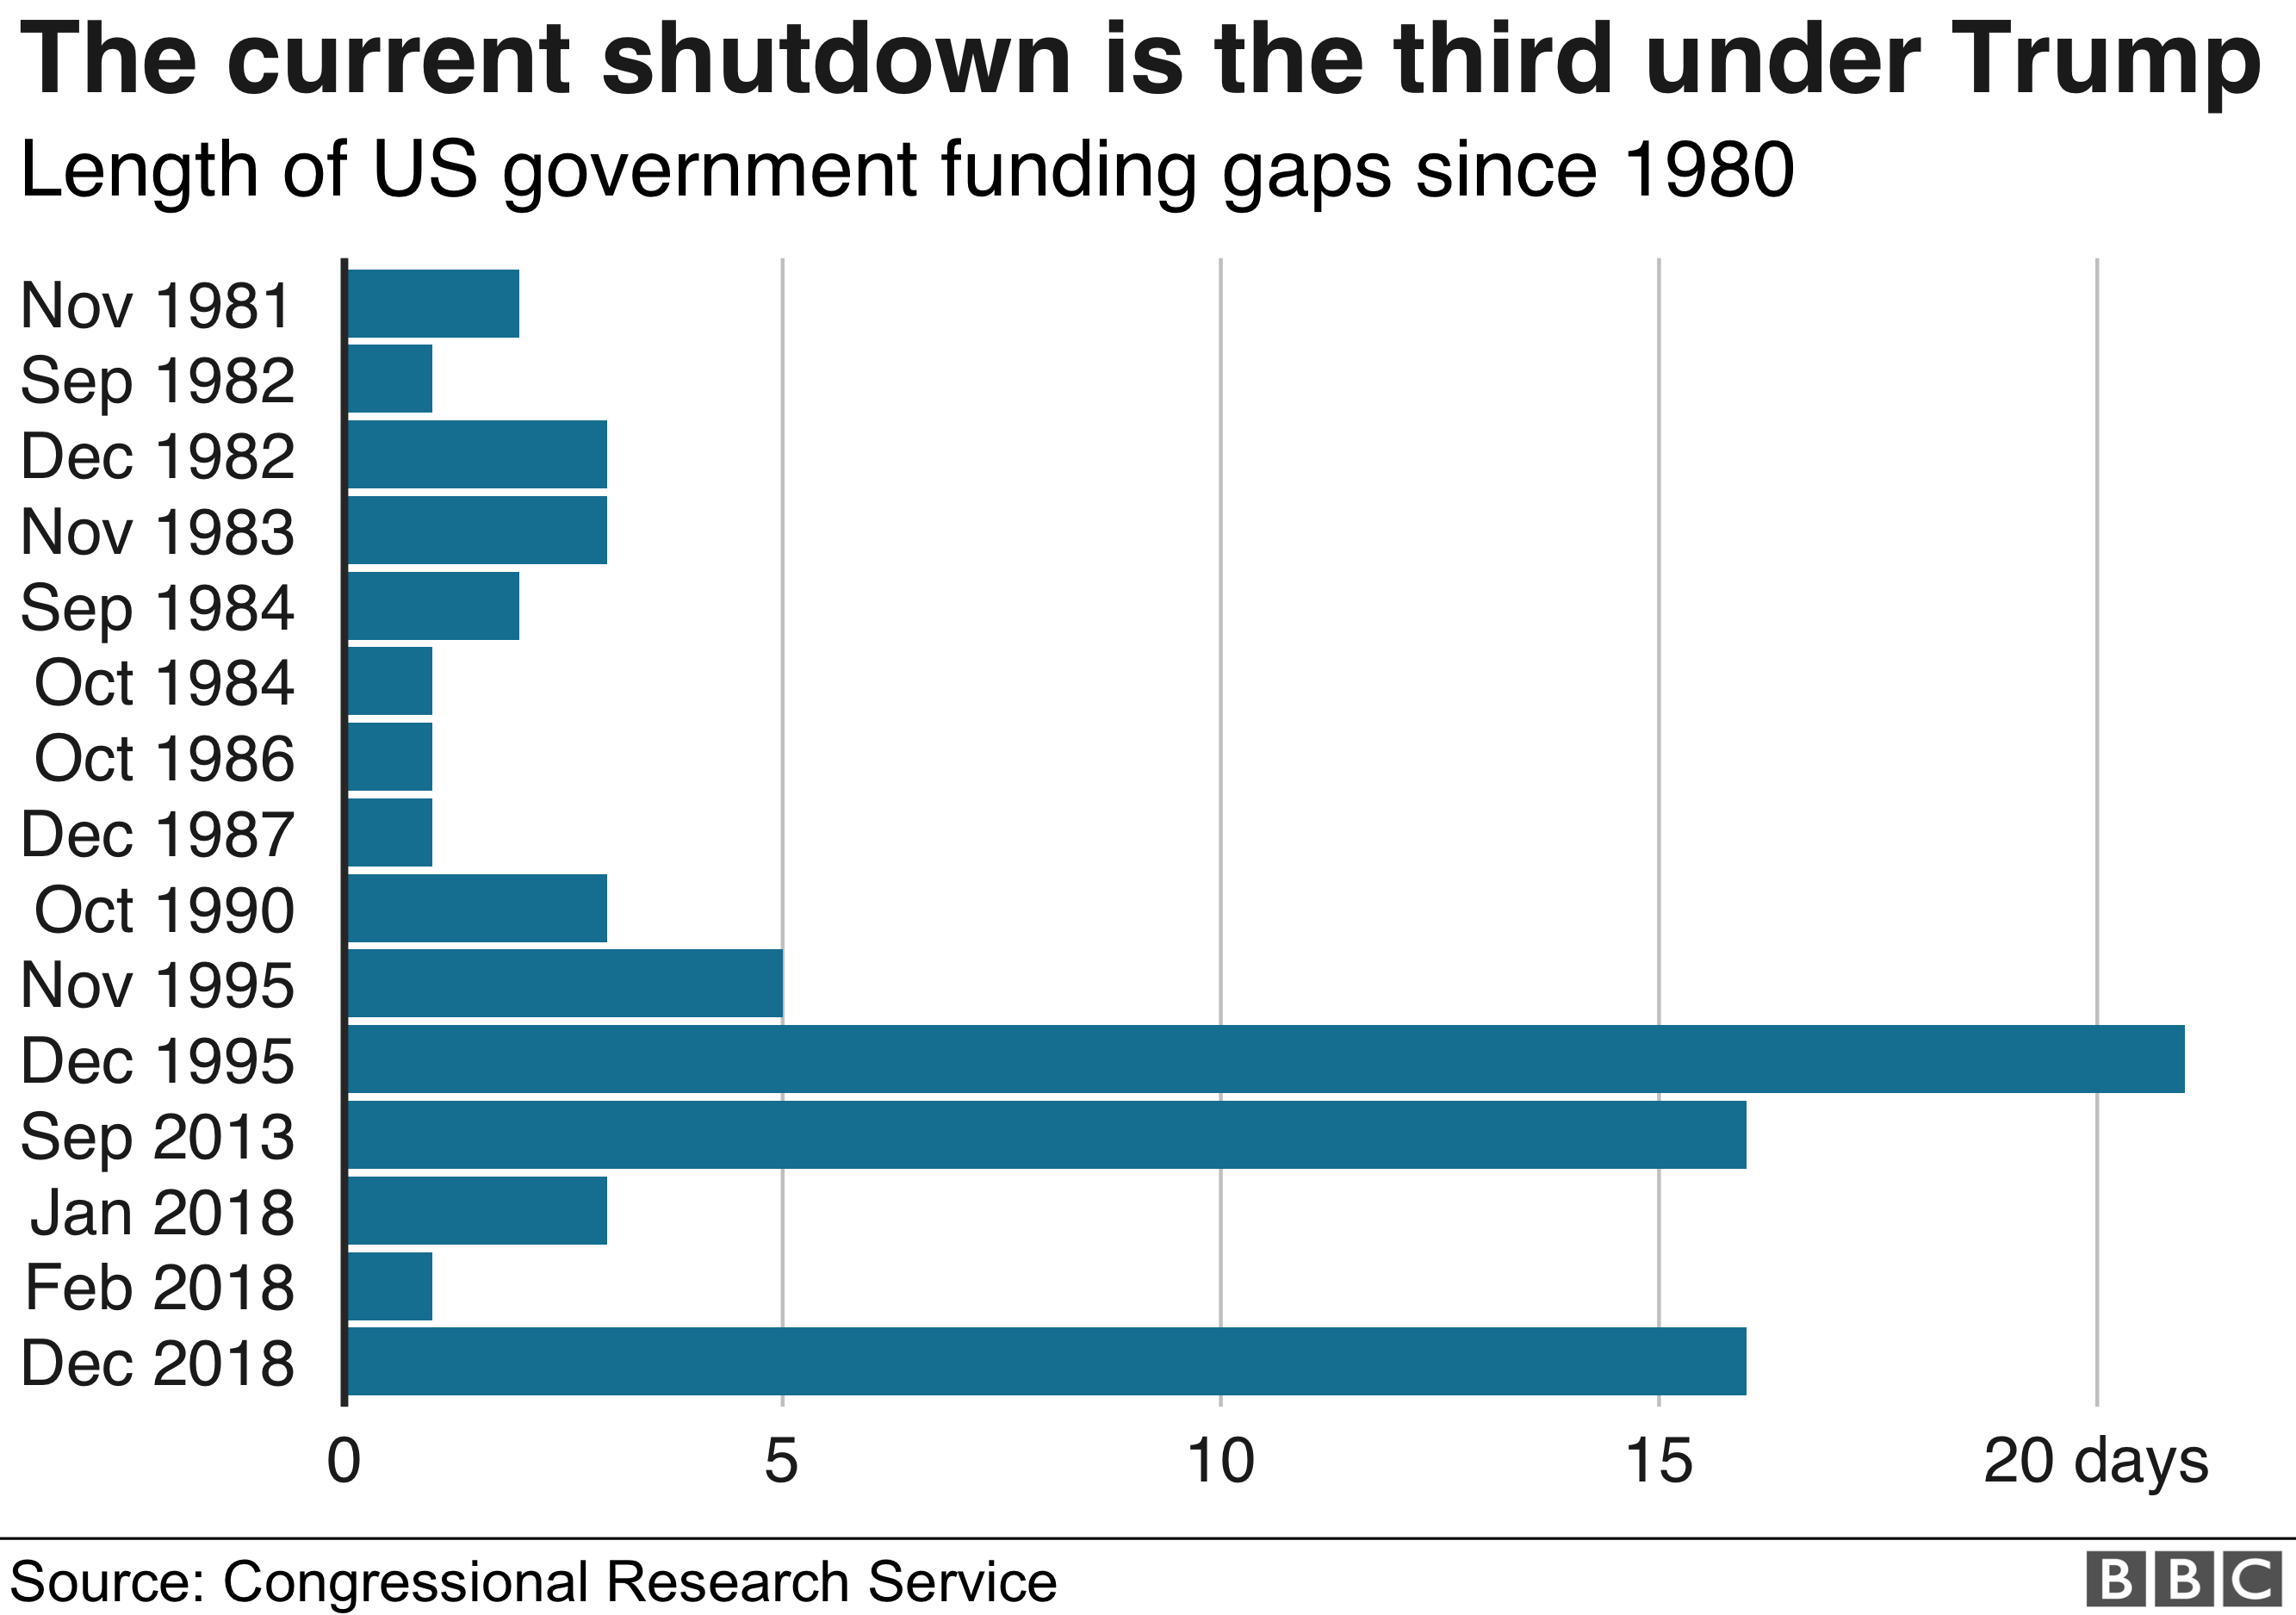 graph showing duration of shutdowns over time